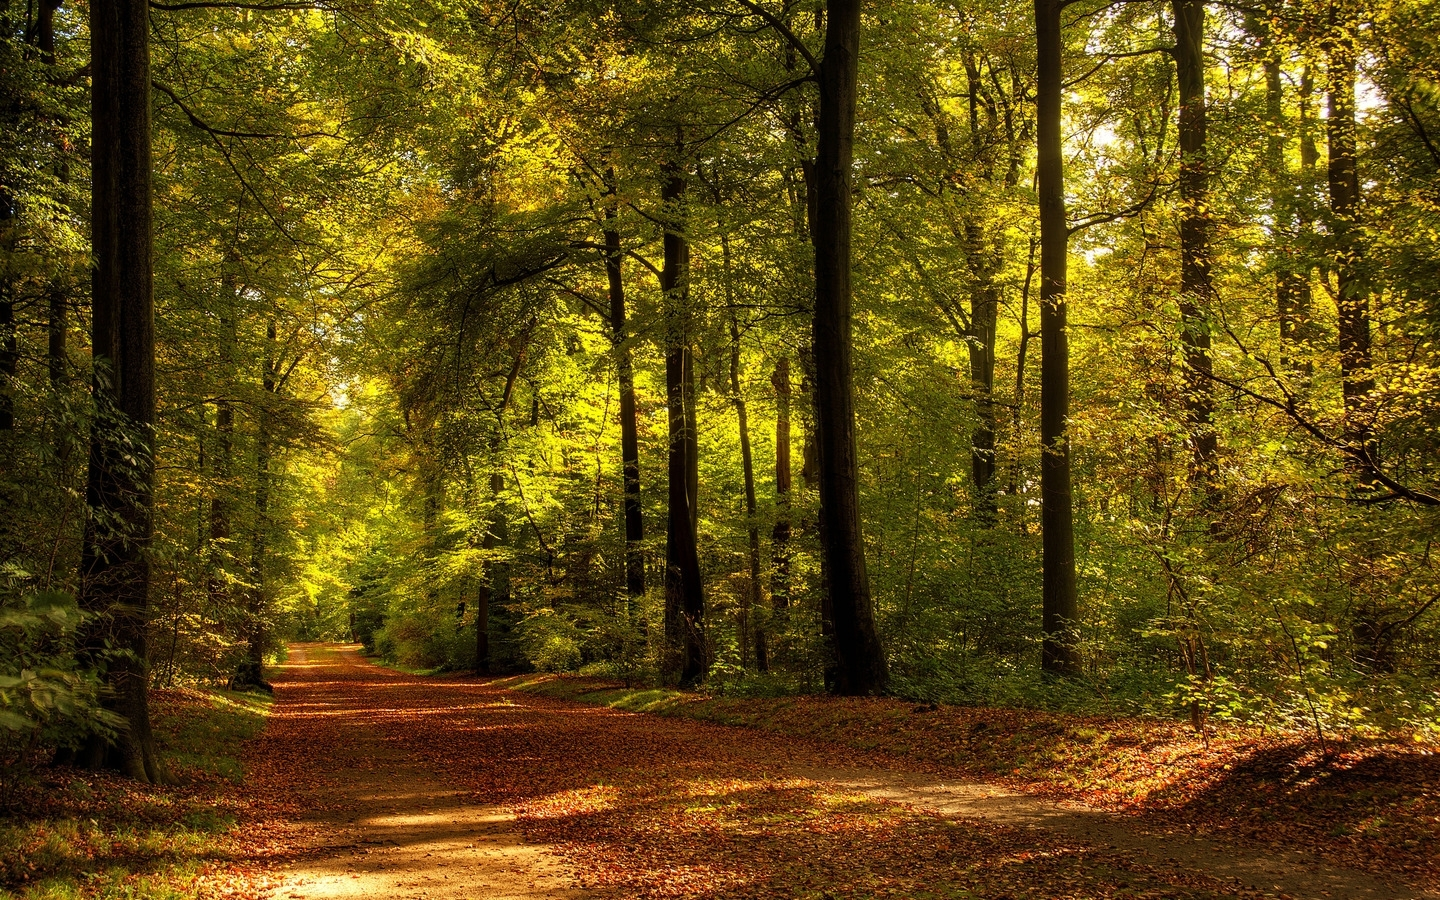 49611 download wallpaper Landscape, Nature, Trees, Roads screensavers and pictures for free